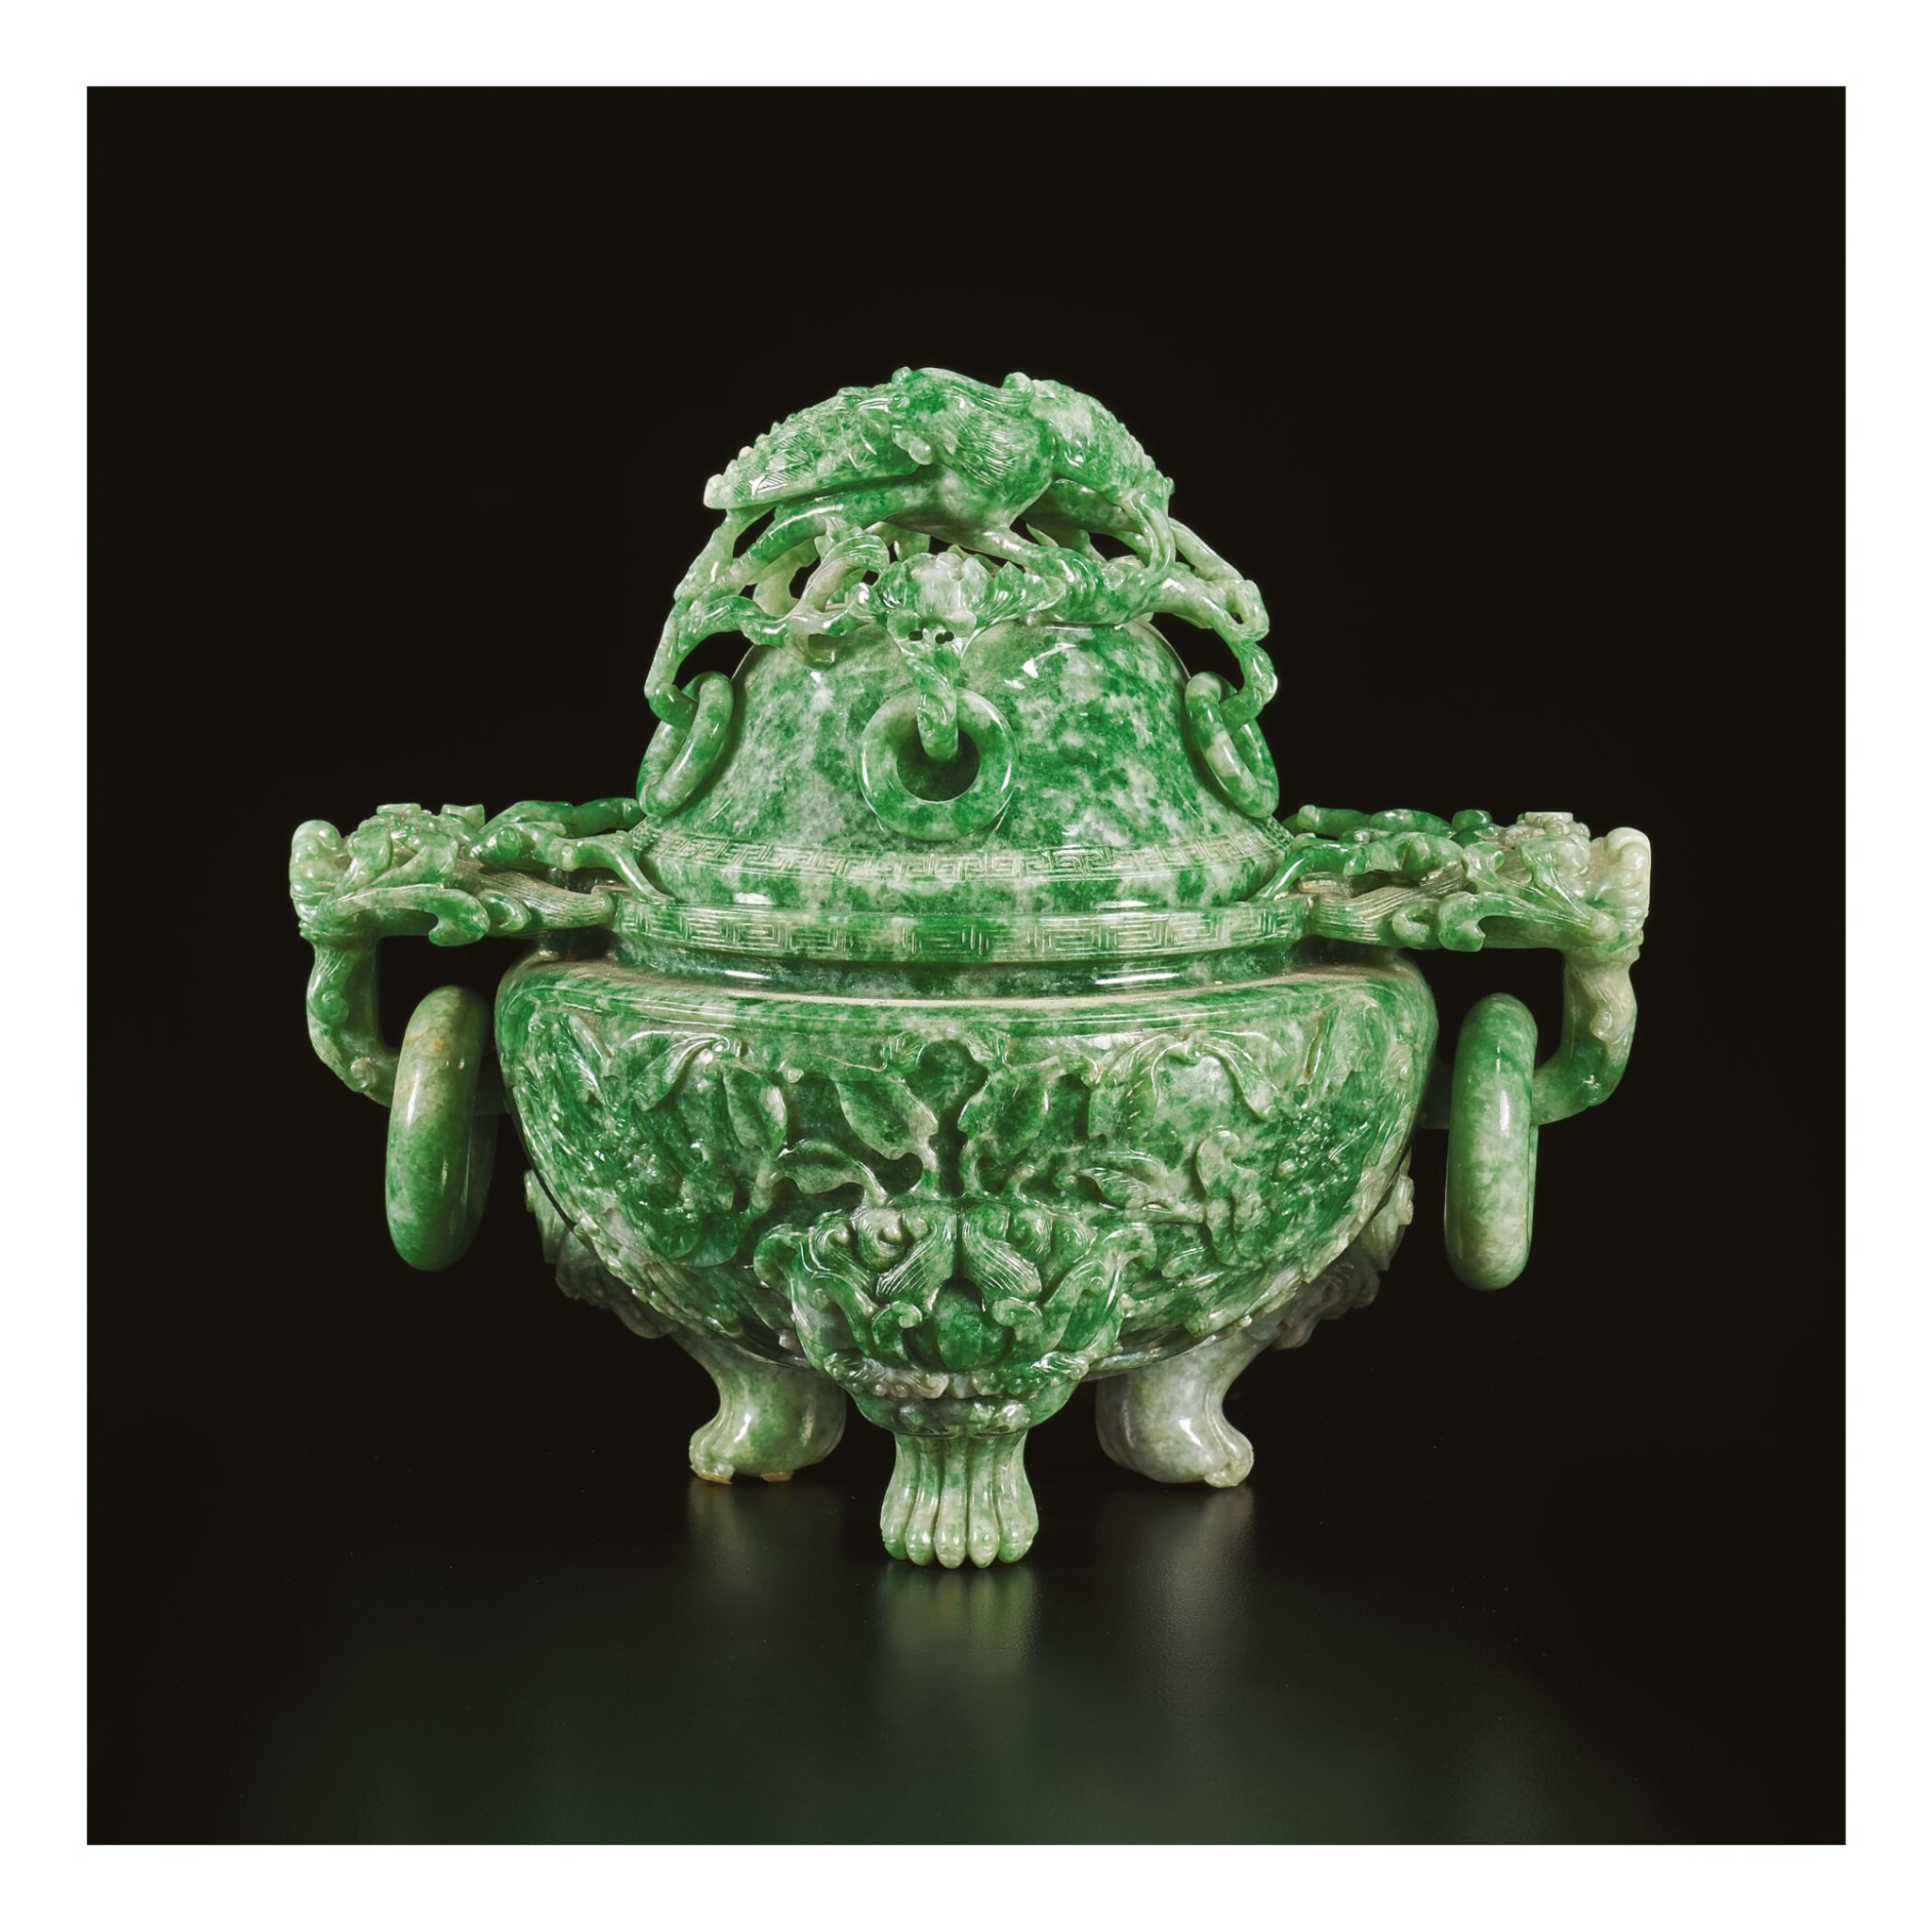 View 1 of Lot 668. AN APPLE-GREEN JADEITE TRIPOD CENSER AND COVER, QING DYNASTY, LATE 19TH / EARLY 20TH CENTURY.